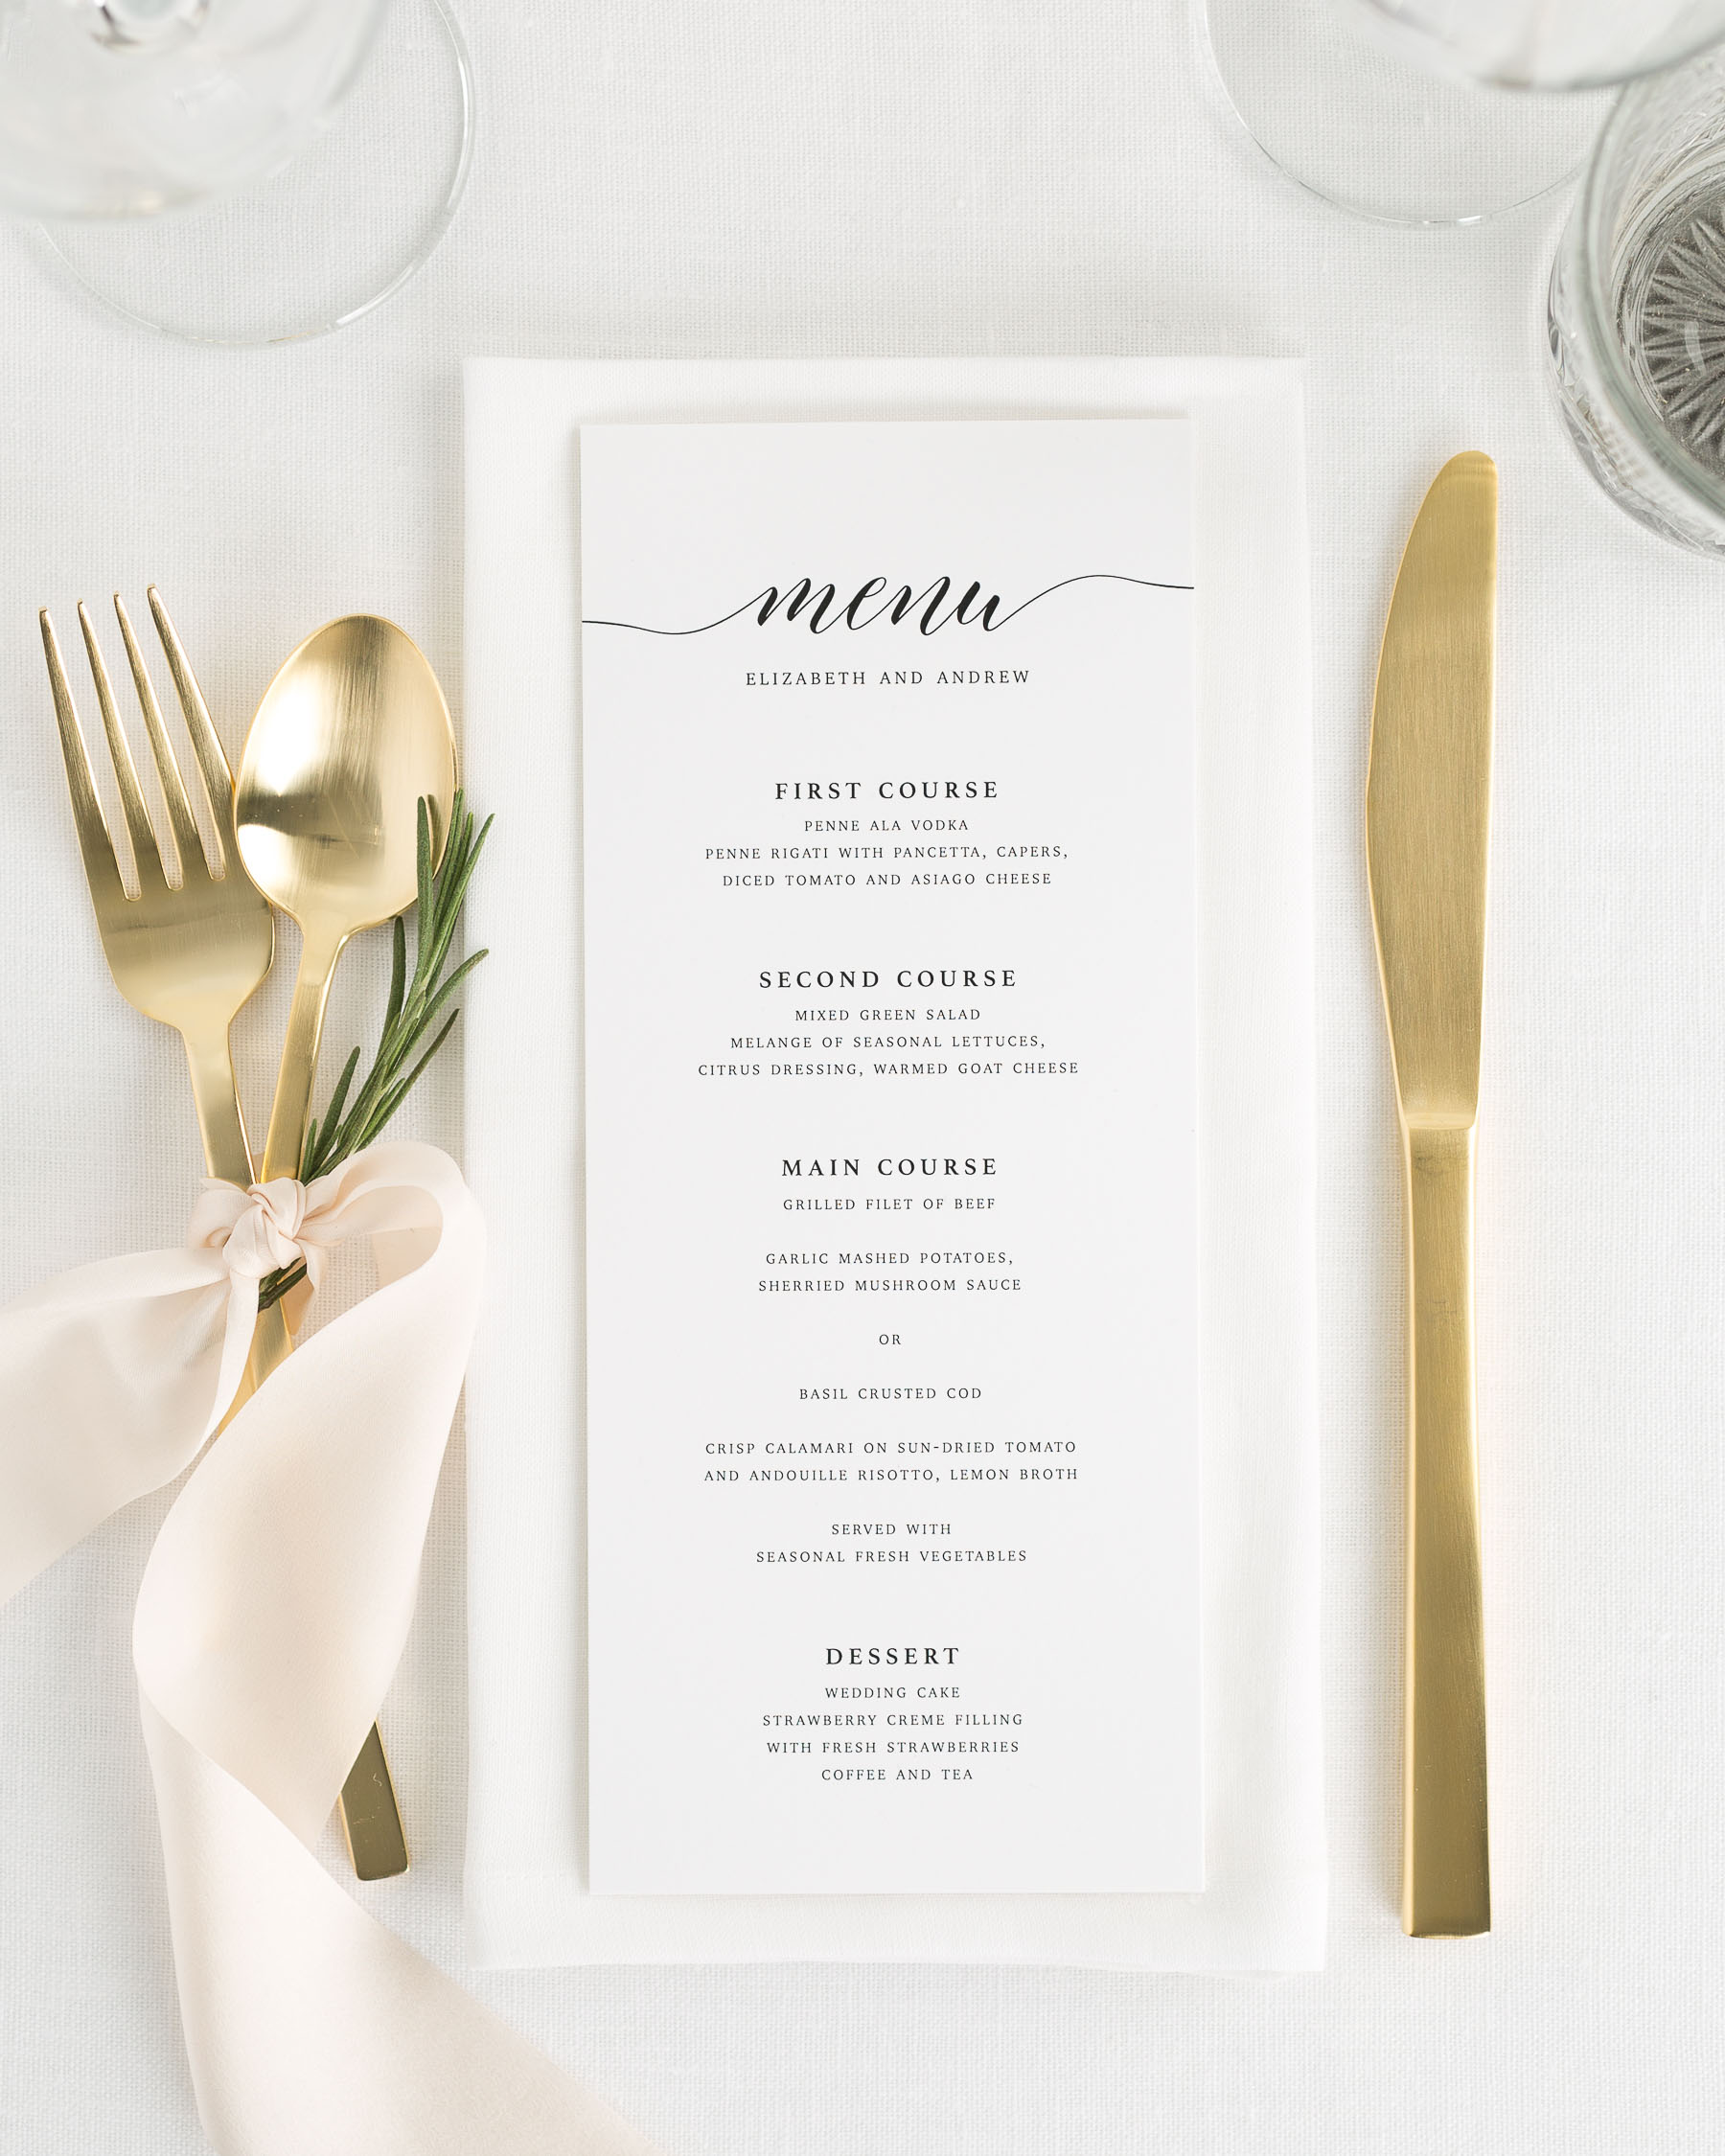 Elegant Romance Wedding Menus Wedding Menus By Shine